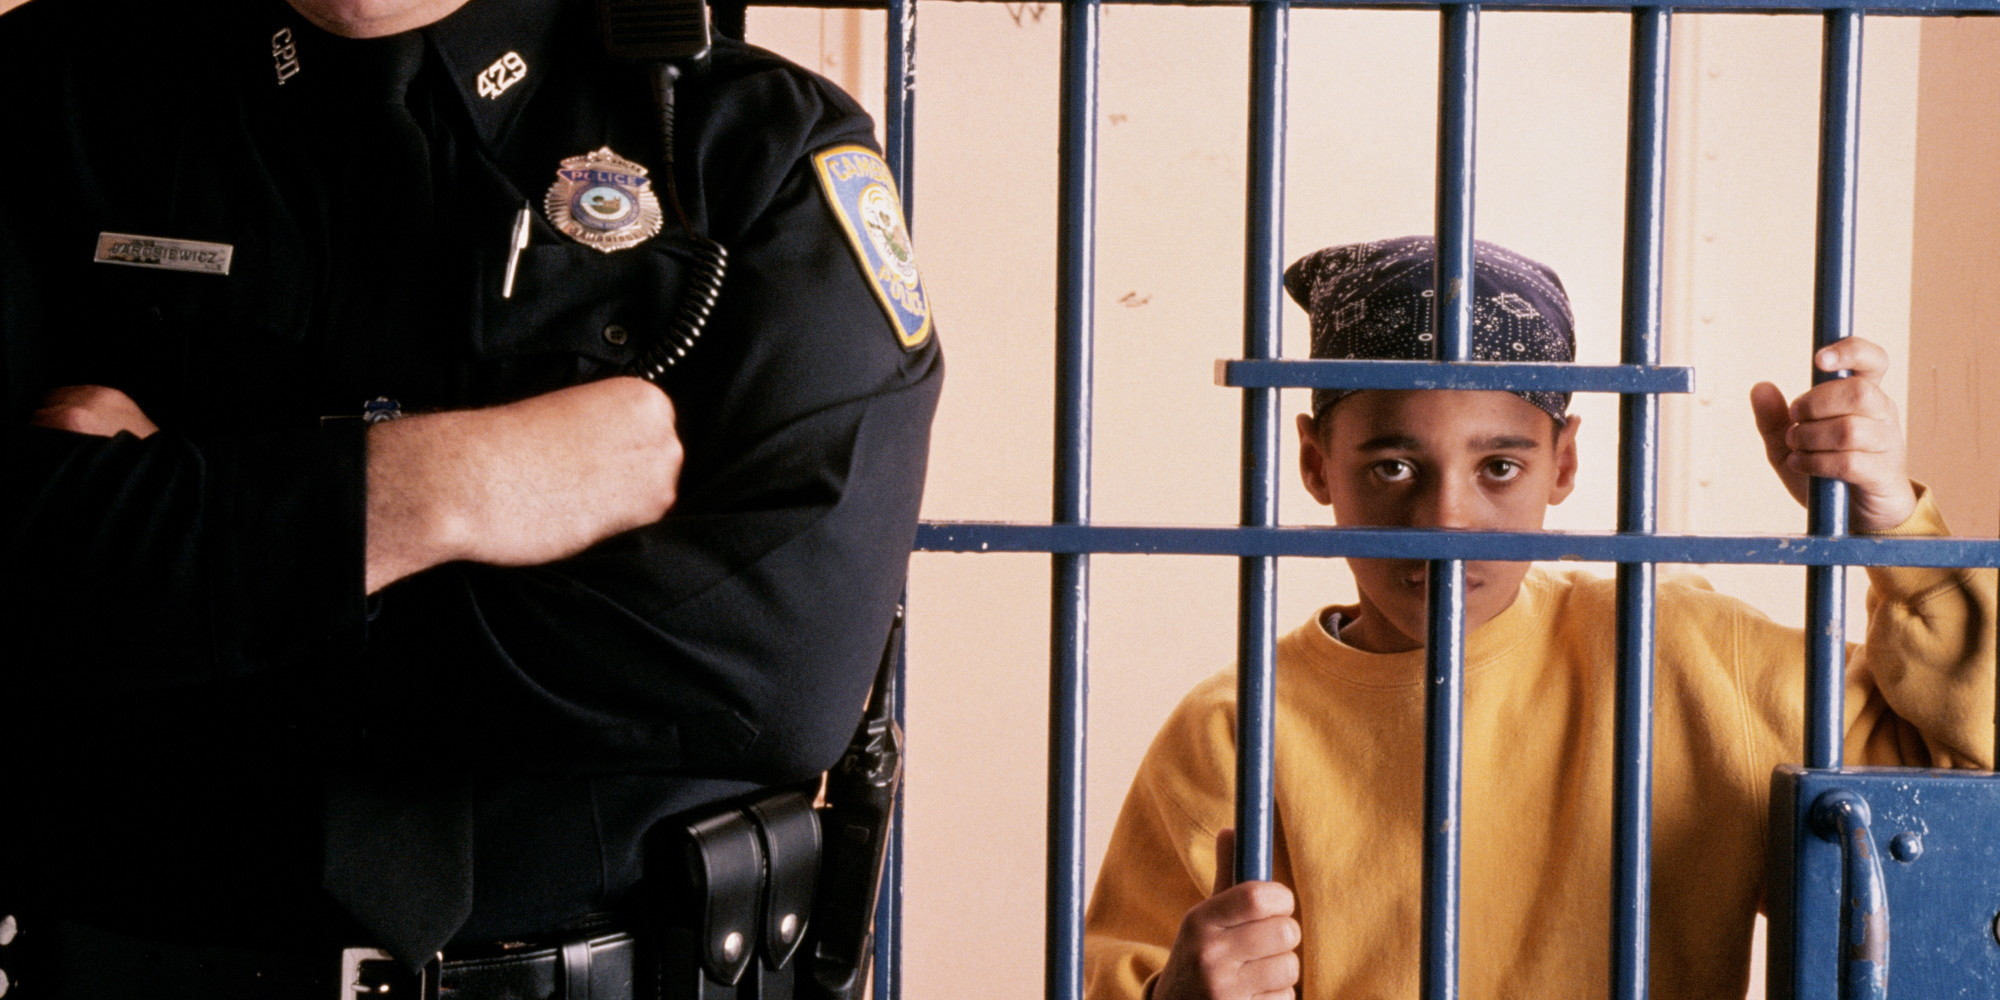 the need for reform in the juvenile justice system of the united states We need reform now  maddening failure of america's juvenile justice system  juvenile detention facilities throughout the united states are plagued by sexual violence, just detention.